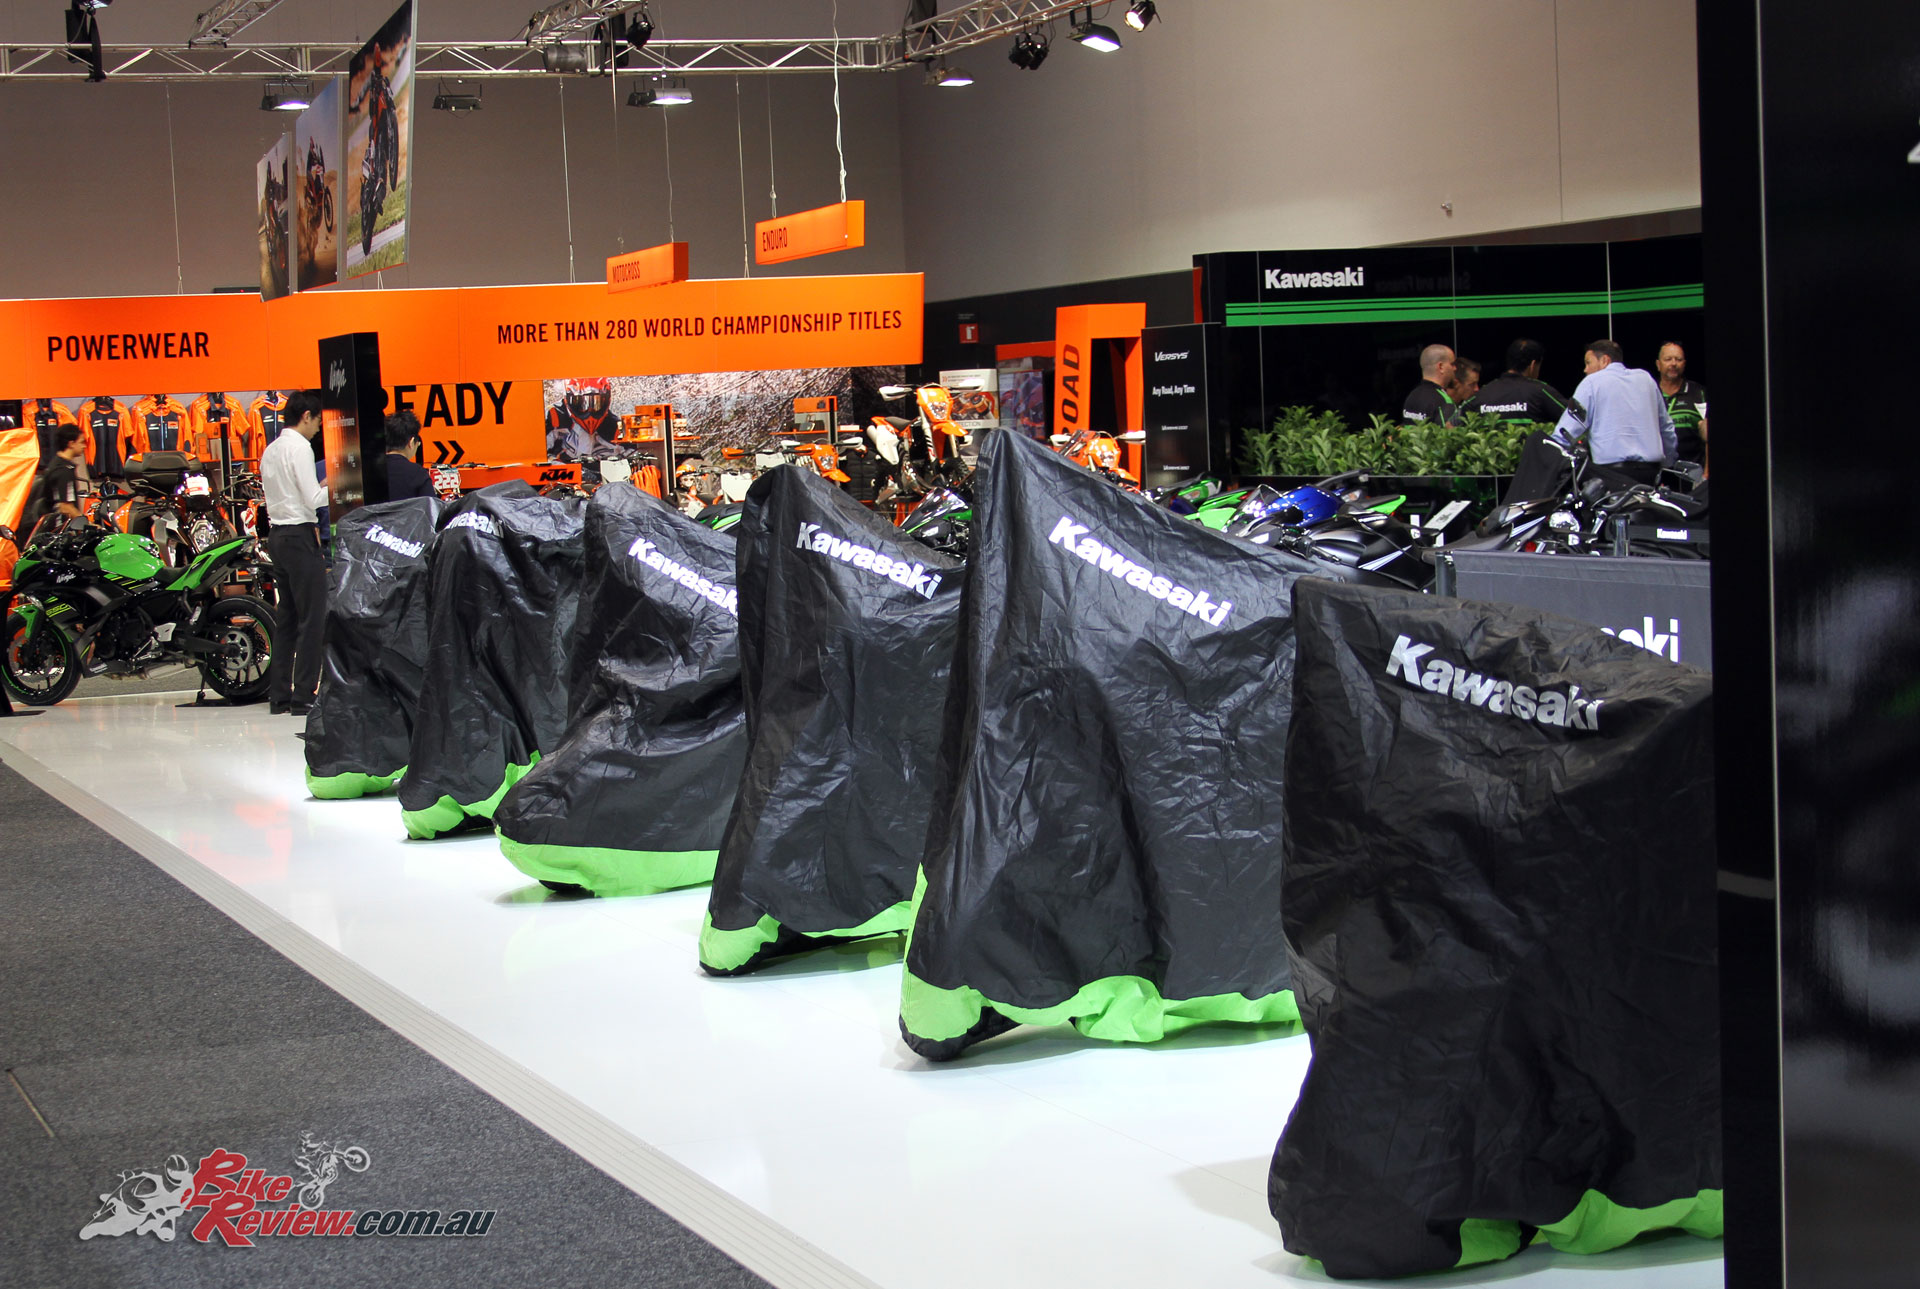 Kawasaki did an early unveil prior to the gates opening, meaning all new models were already on display for the first wave